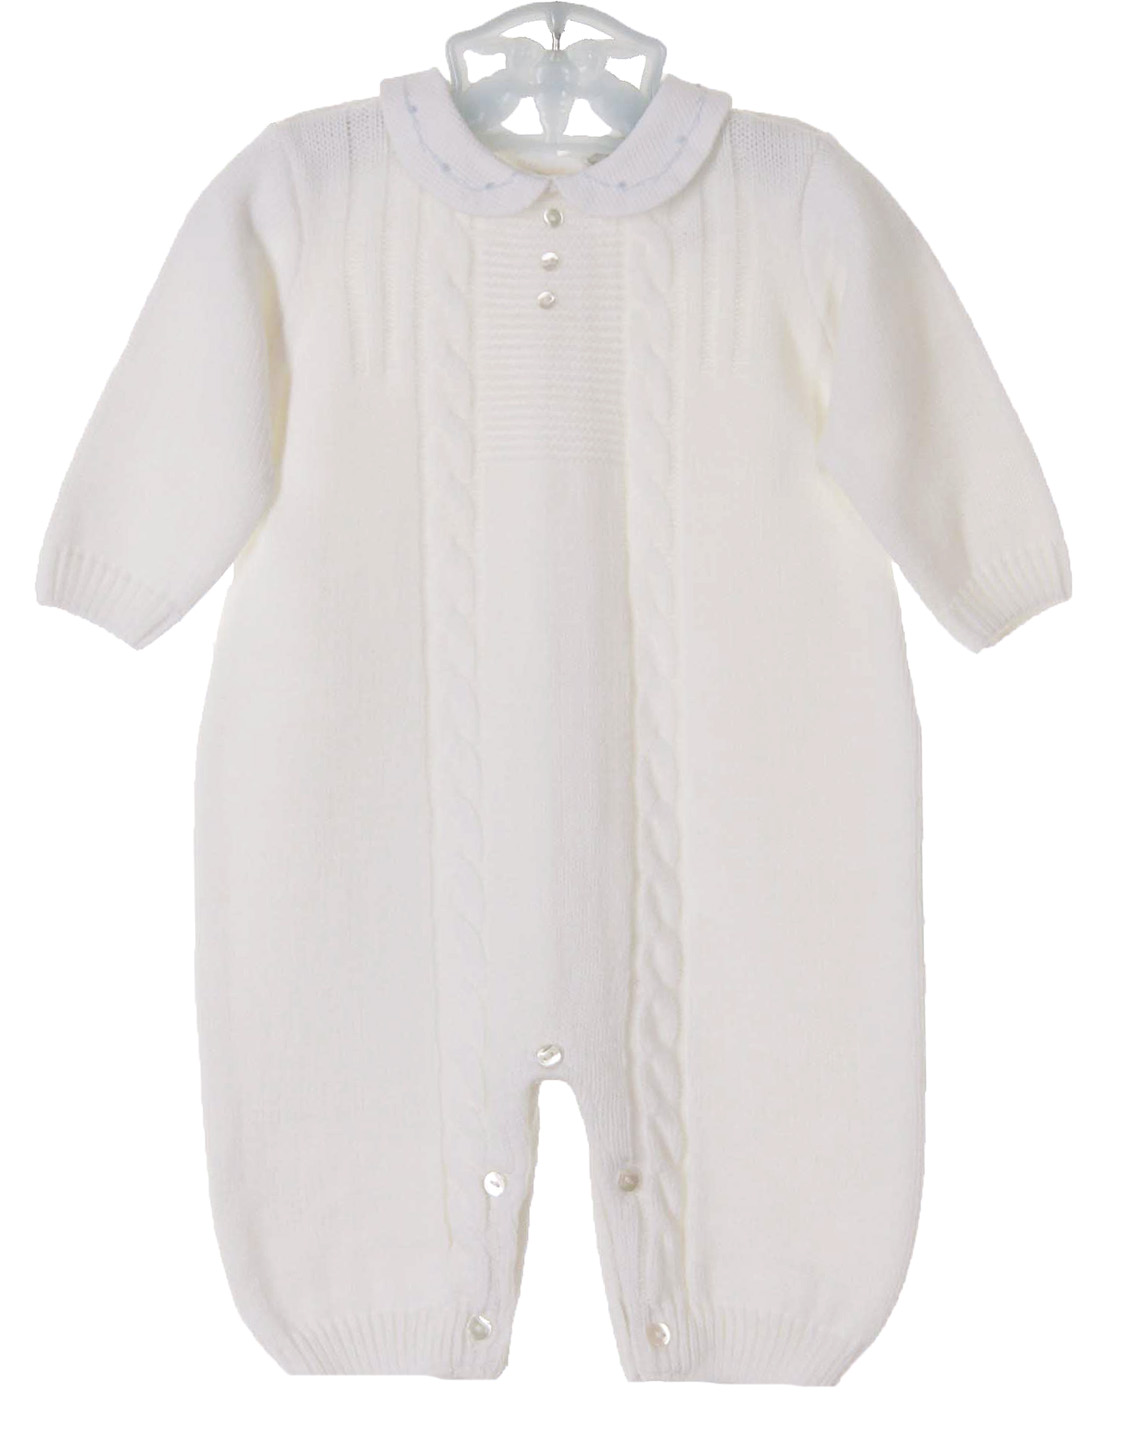 New Sarah Louise White Knit Romper With Embroidered White